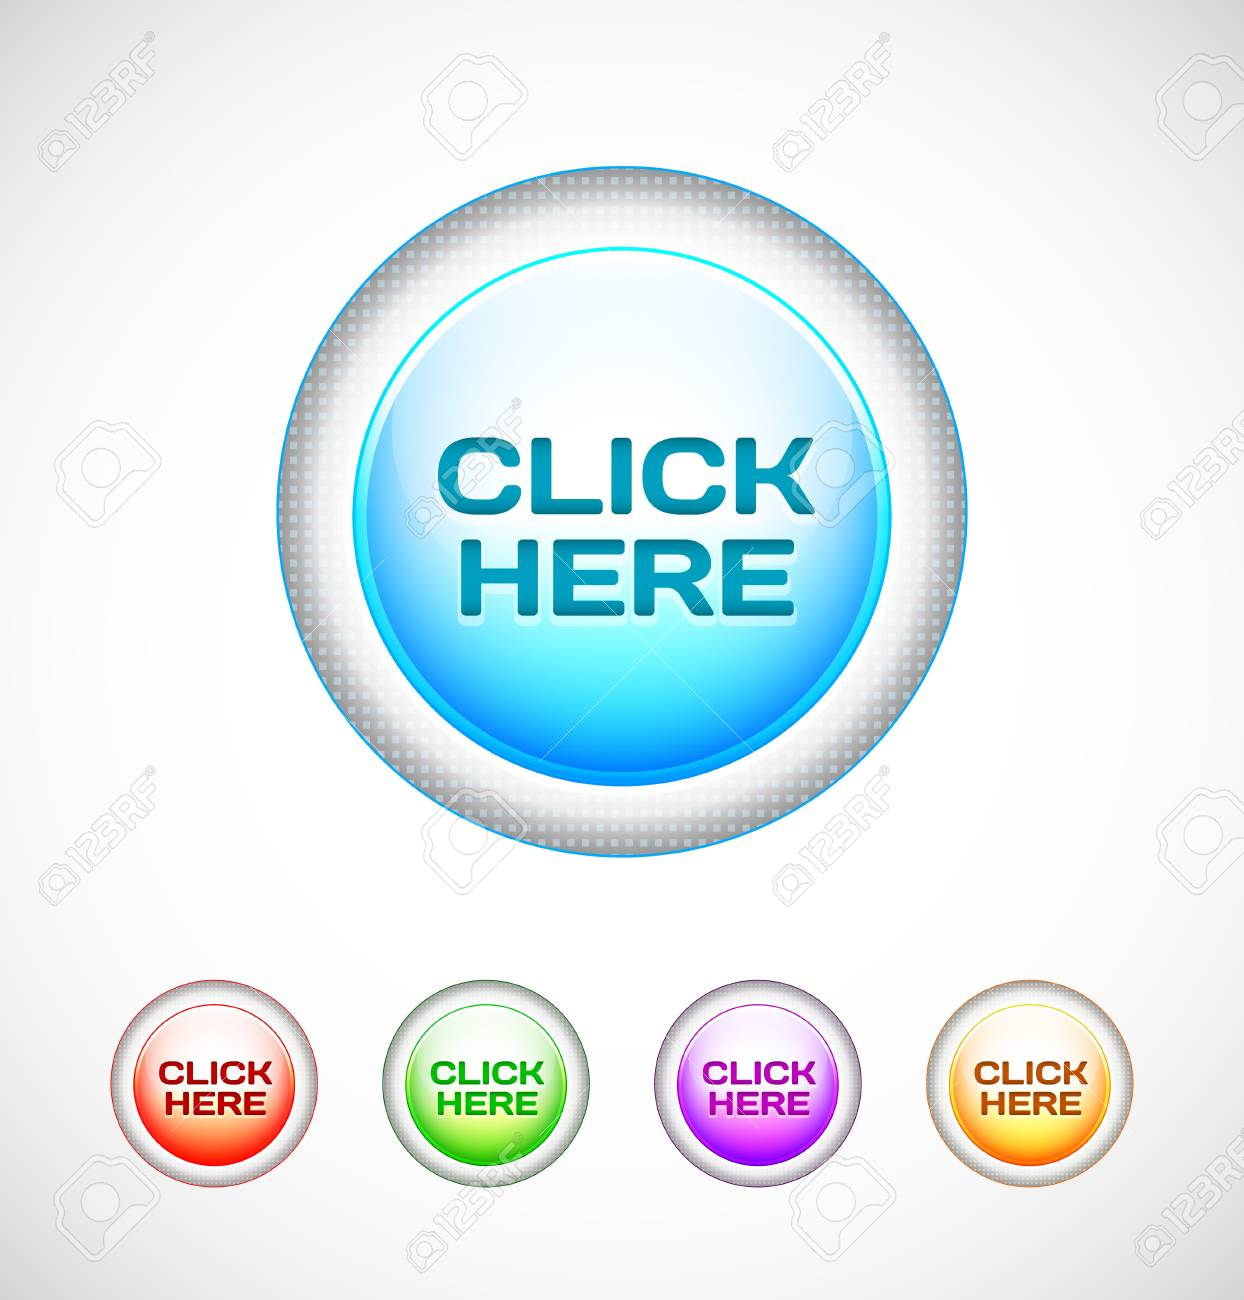 Round Web Buttons Stock Vector - 13170744